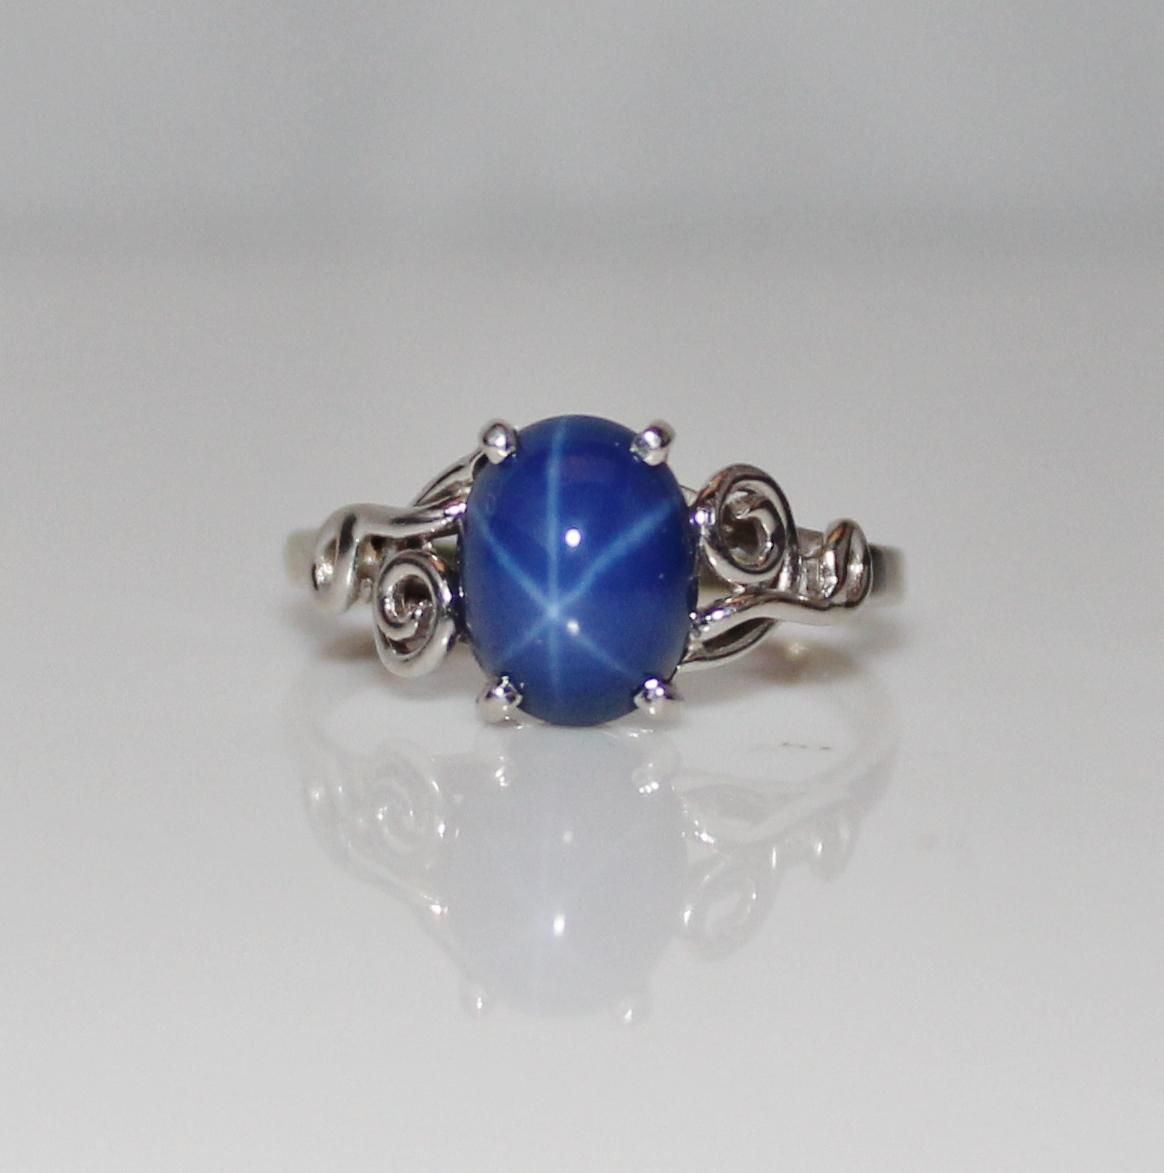 trade sapphire ethical fair mcfarland and gray jewelry moissanite stones ring using designs